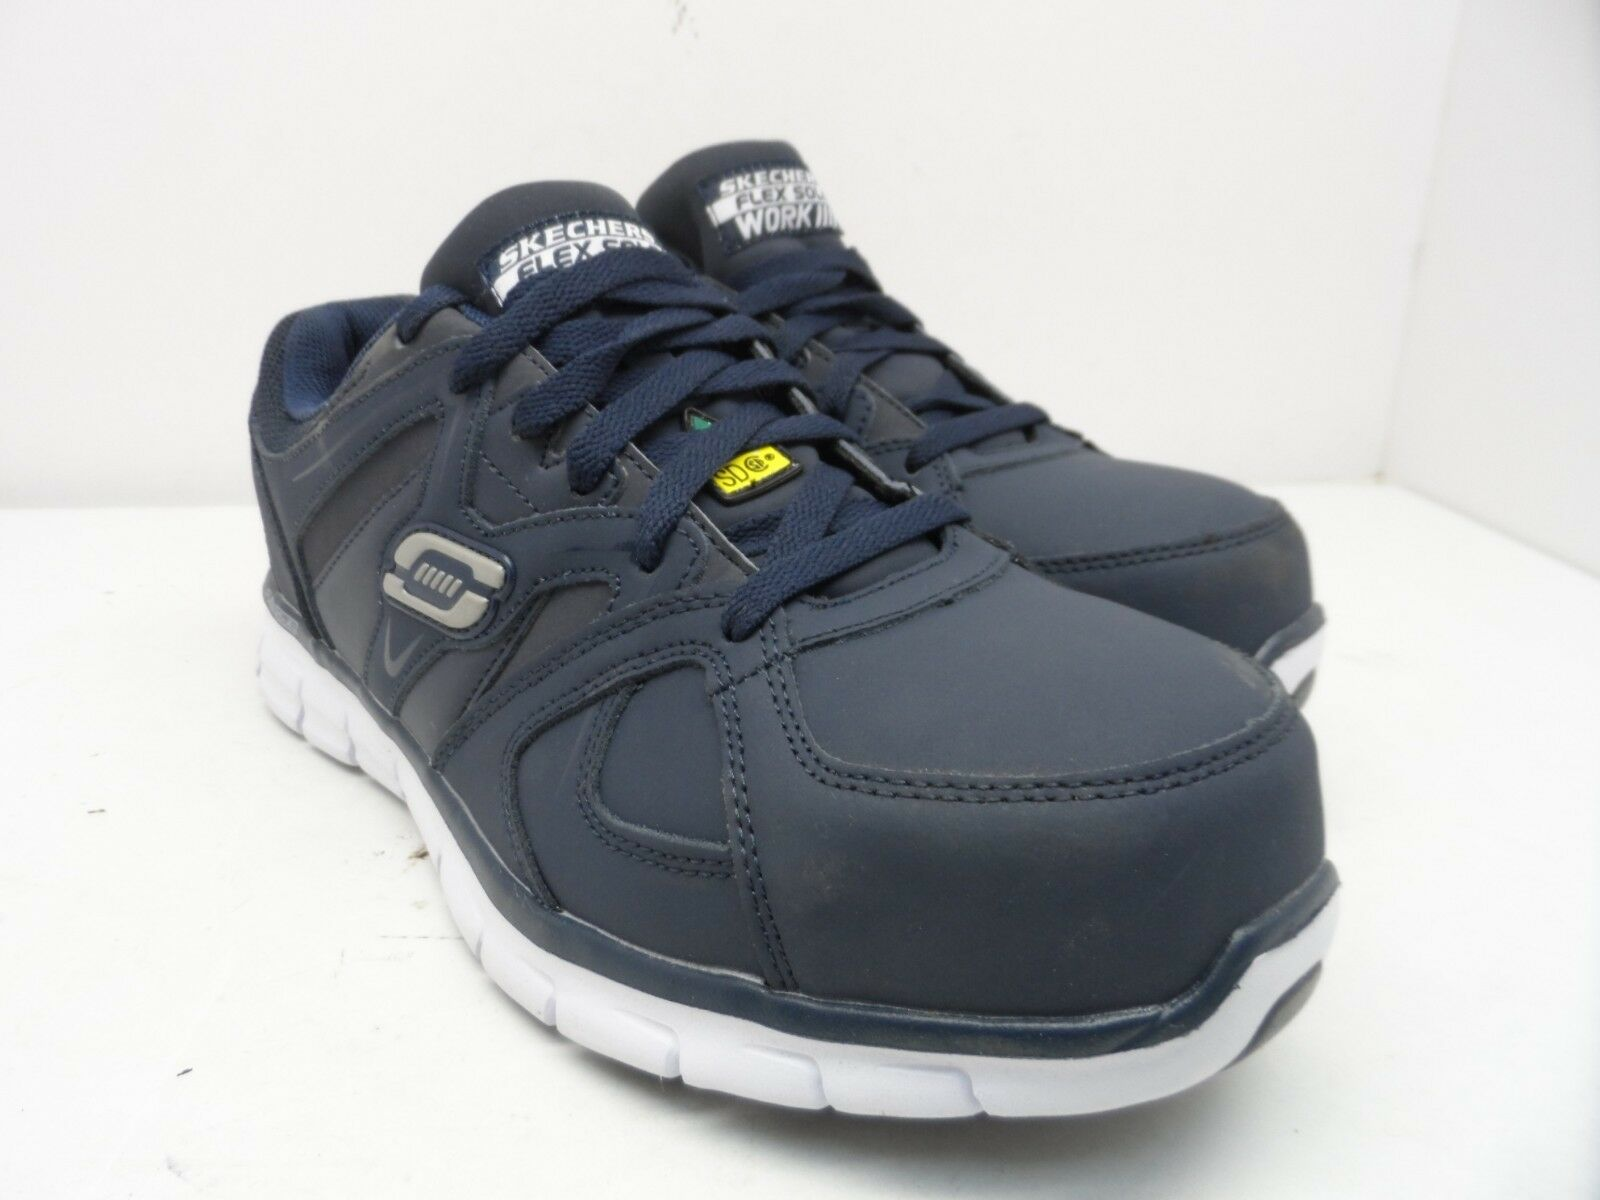 Skechers Work Men's Synergy Ekron Alloy Toe Work shoes Navy Size 9M